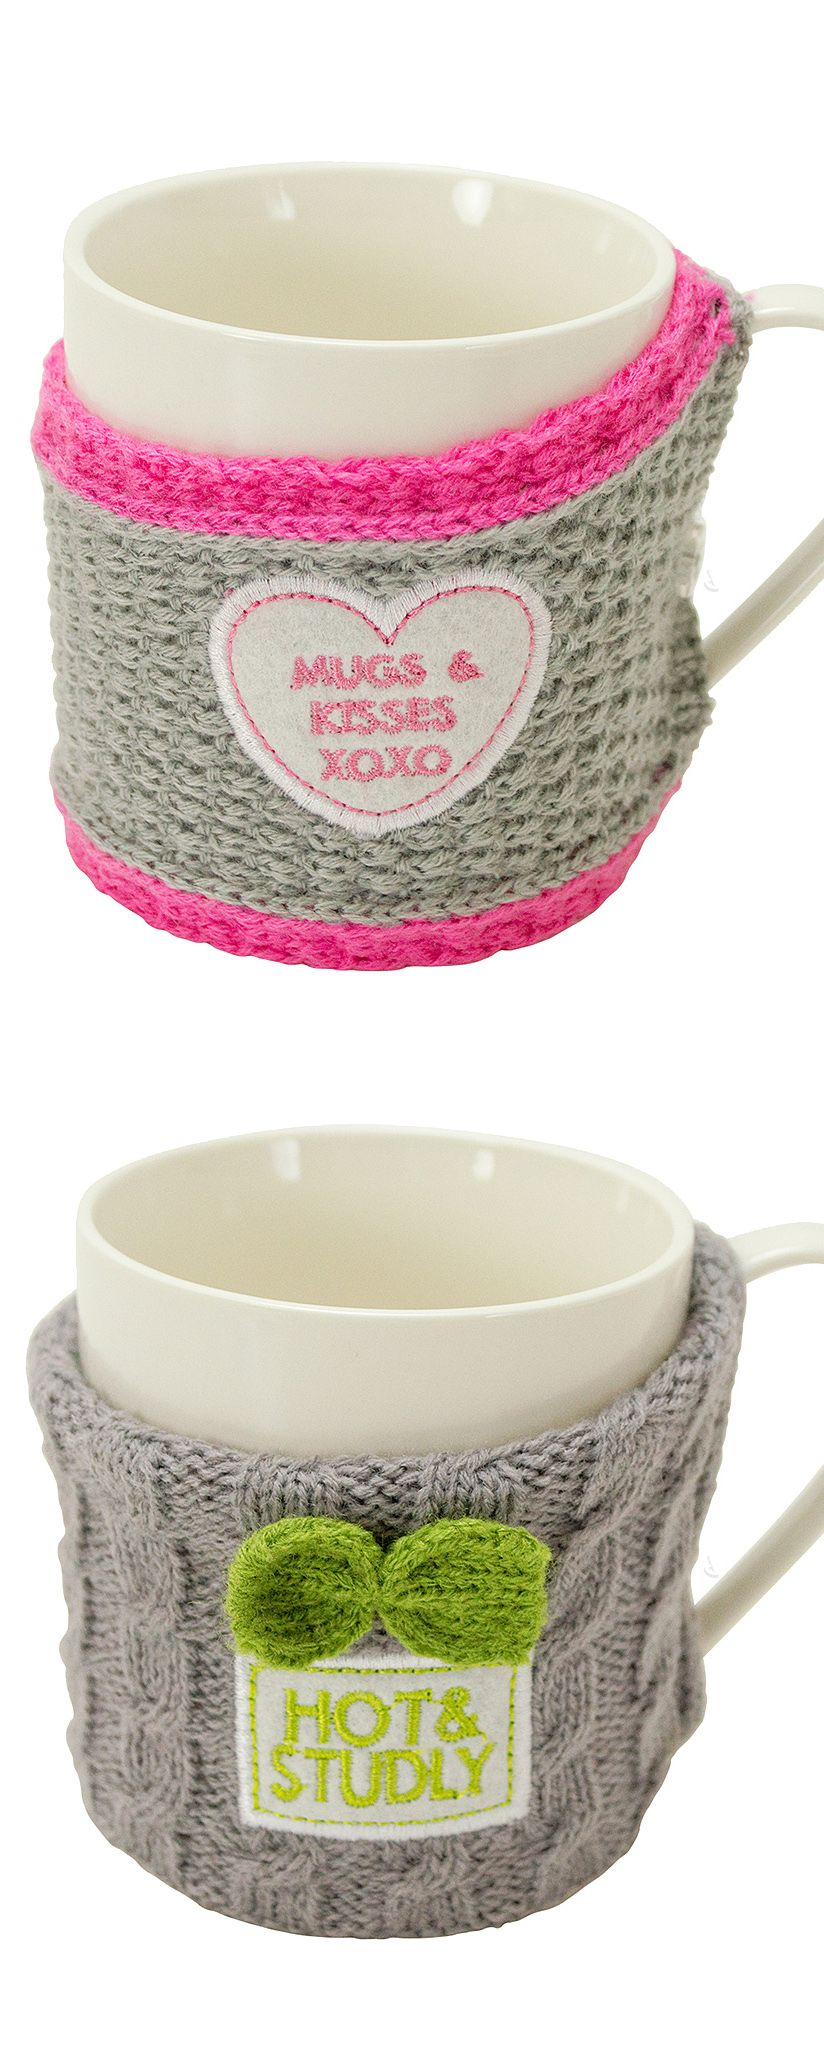 His and Hers knitted sweater mugs! #product_design ...